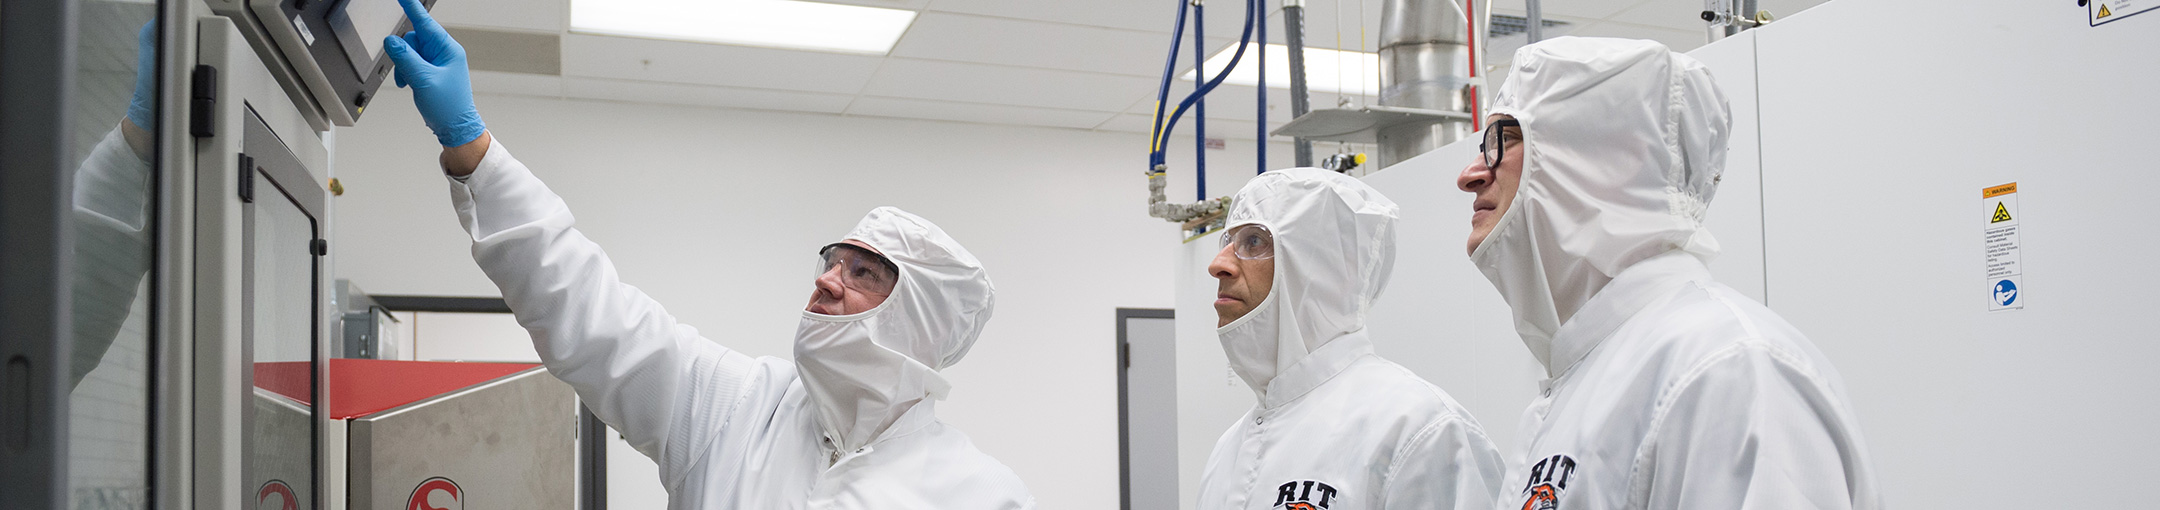 3 people in a clean room wearing white protective suits.